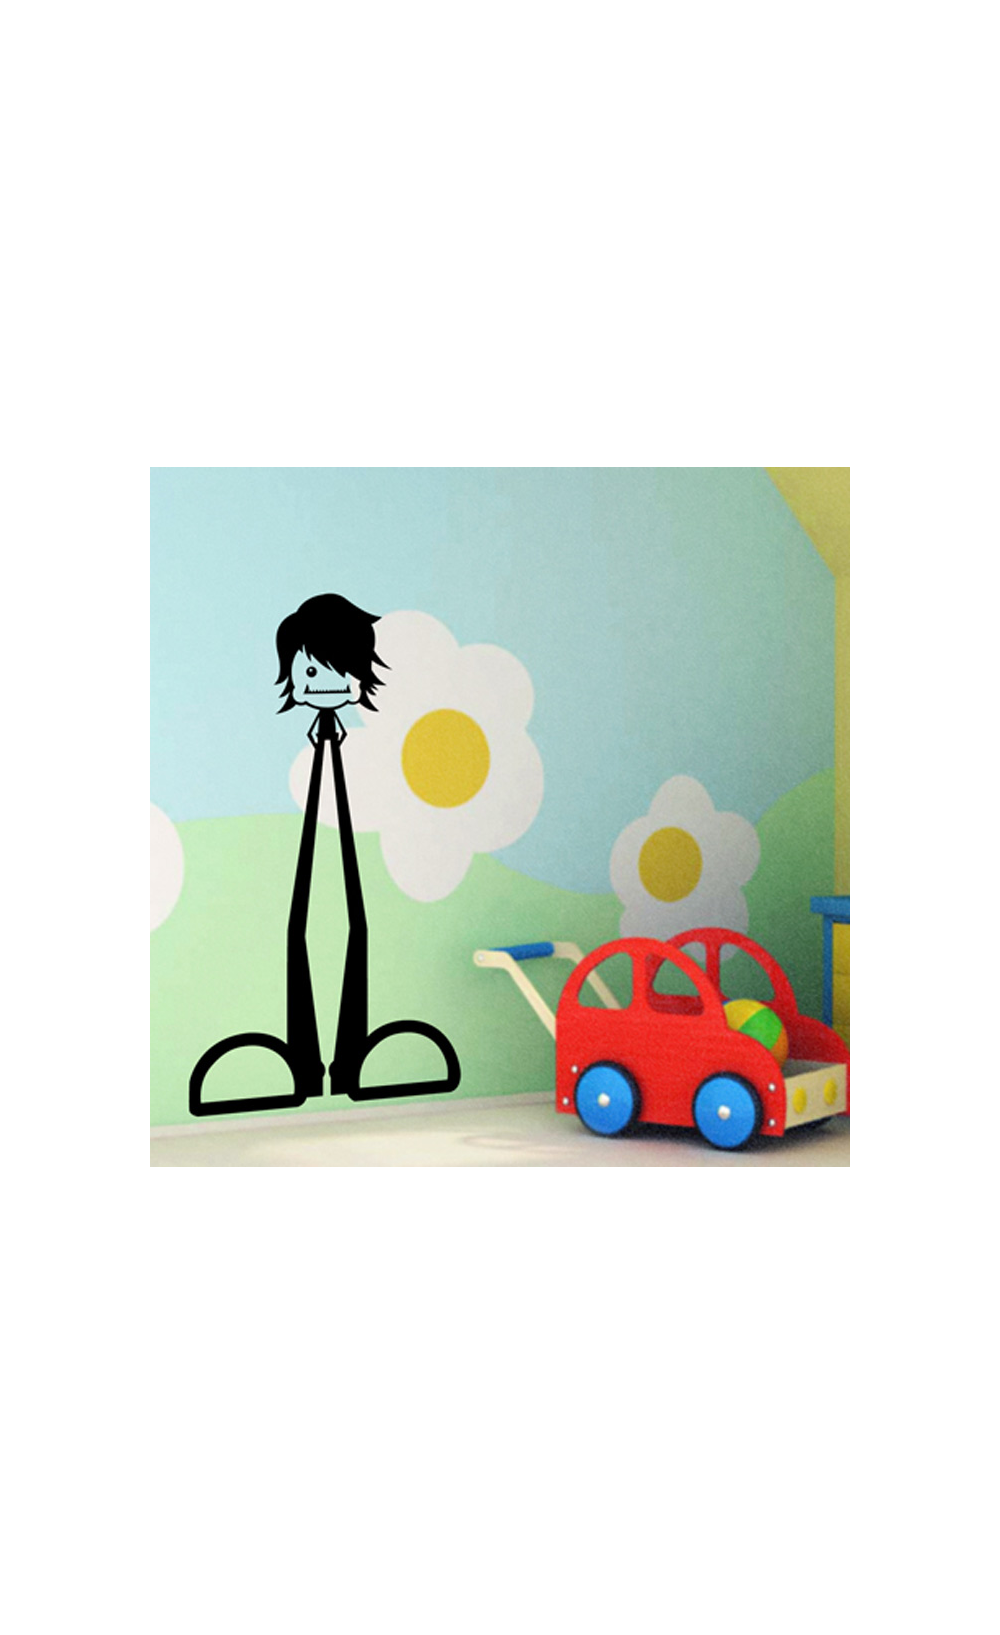 sticker mural pour d corer son int rieur petit prix mod le bonhomme. Black Bedroom Furniture Sets. Home Design Ideas